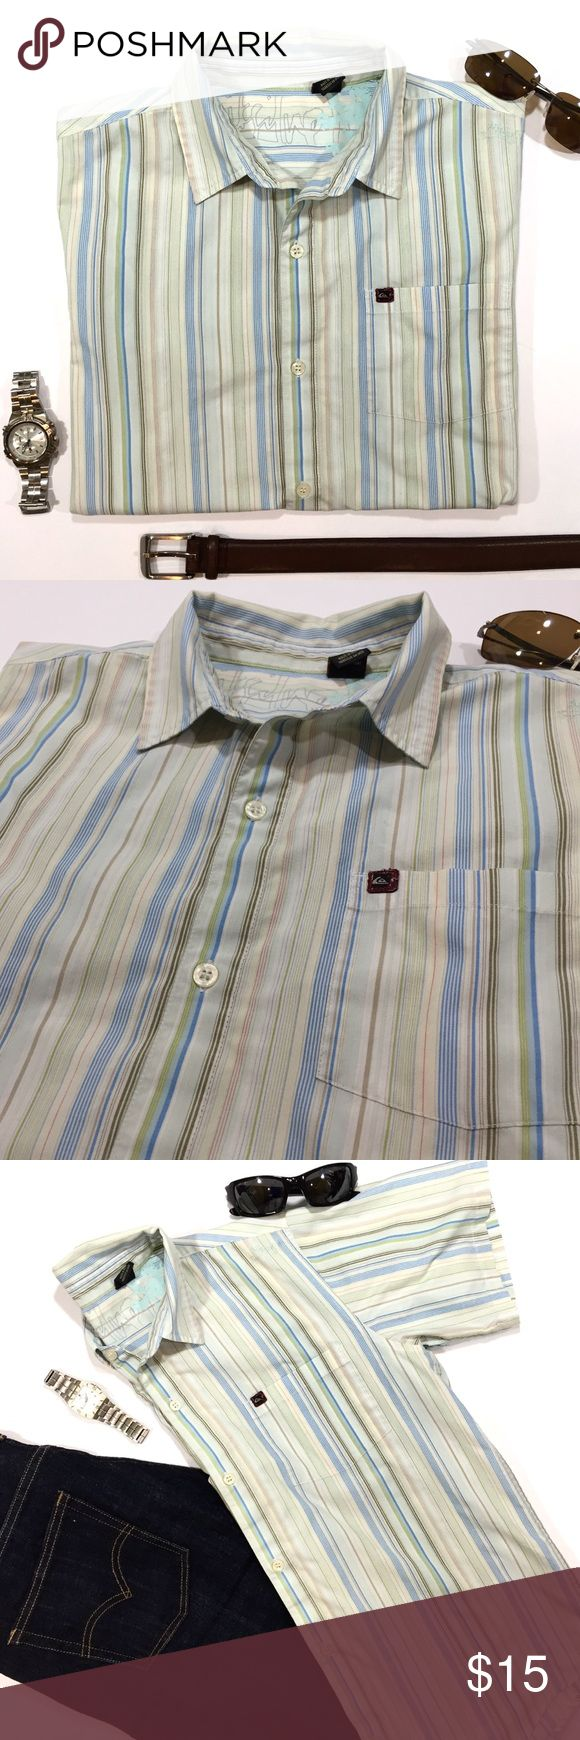 """Boys short sleeve collar QUIKSILVER shirt XL (20) Boy's short sleeve button down shirt by QUIKSILVER. Size: XL (20). Color: beige/white/blue/green/red/brown/gray stripes. Material: 65% Polyester, 35% Cotton. Has Quiksilver branding throughout: Quiksilver embroidered below left shoulder, Quiksilver tag shirt pocket, Quiksilver on all buttons, and Quiksilver clothing tag inside collar. Pre-worn but in great shape. Retails for $35!  Measurements: Length - 25"""" Shoulder to sleeve - 8.5"""" Armpit to…"""